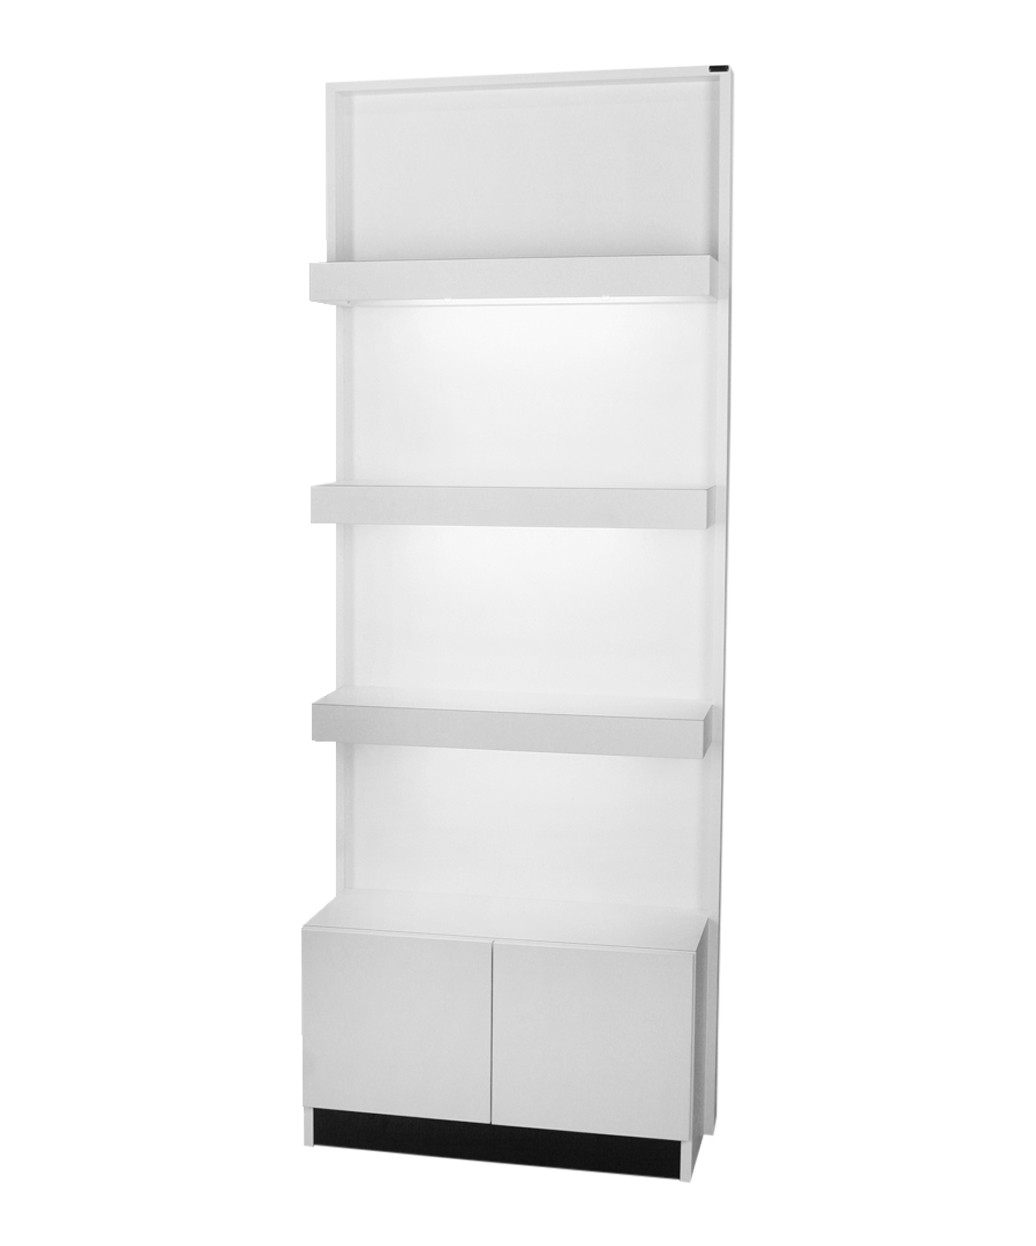 6649-32 Zada Retail Display with Lights and Storage